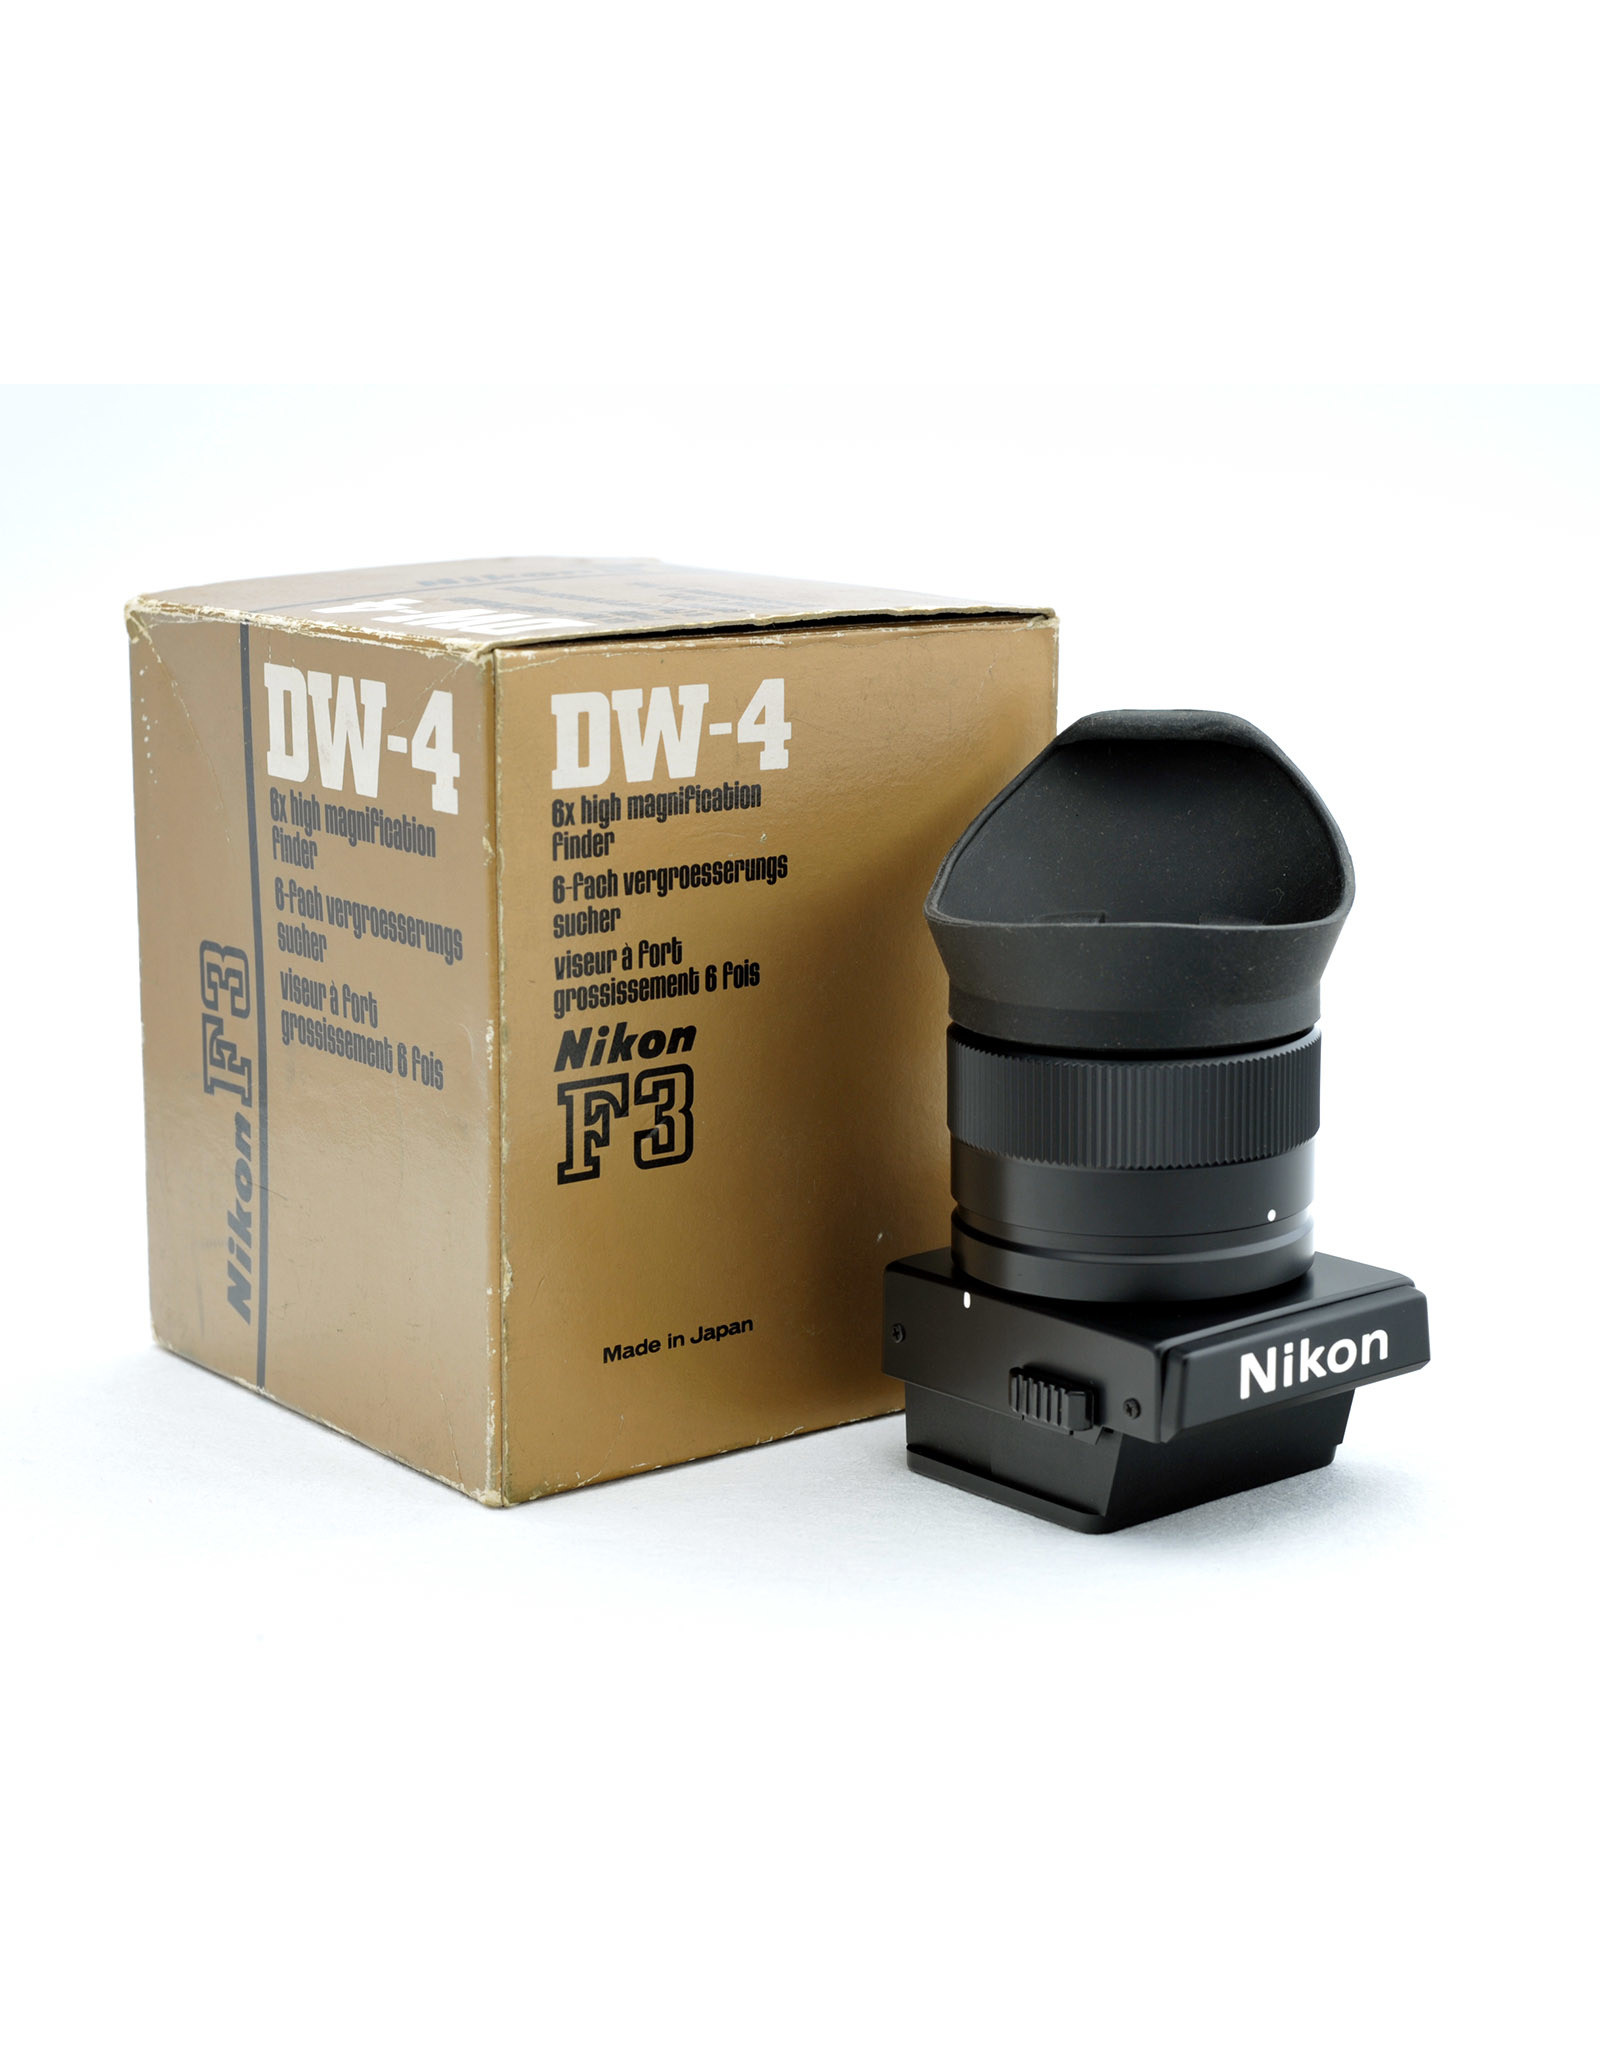 Nikon Nikon DW-4 6x Magnification Finder for Nikon F3   AP1021202